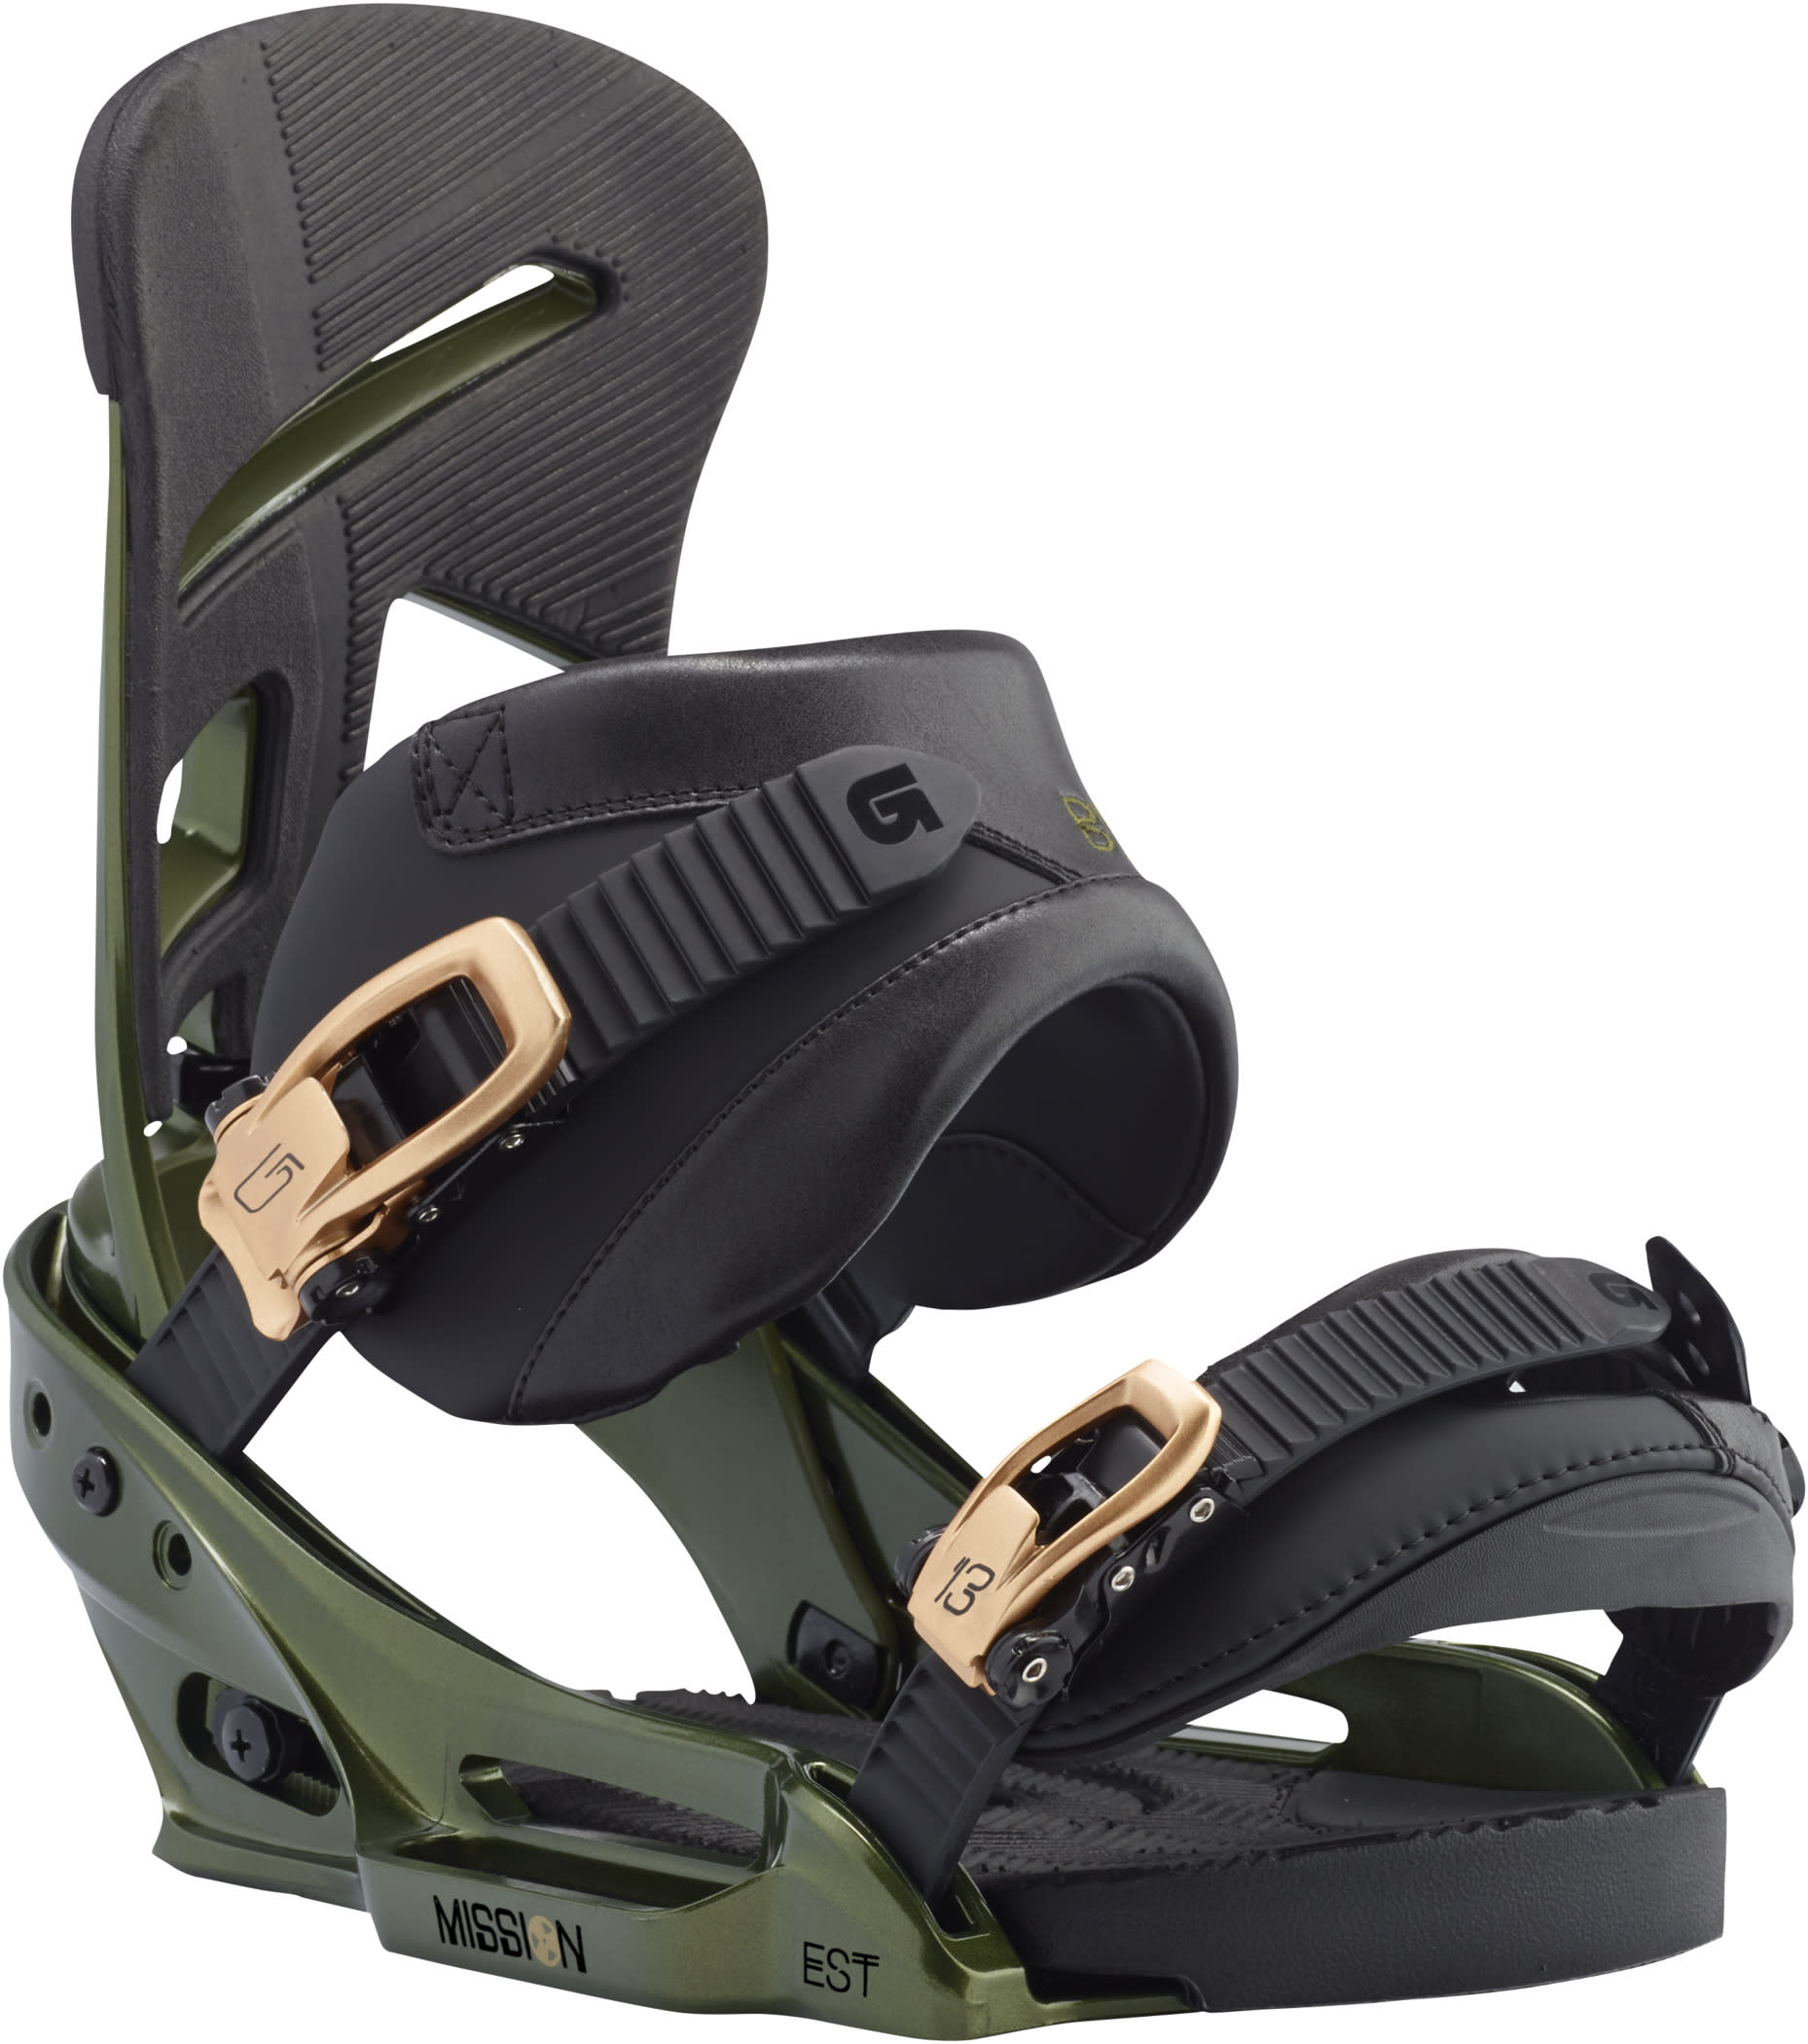 On sale burton mission est snowboard bindings up to 40 off for Housse snowboard burton